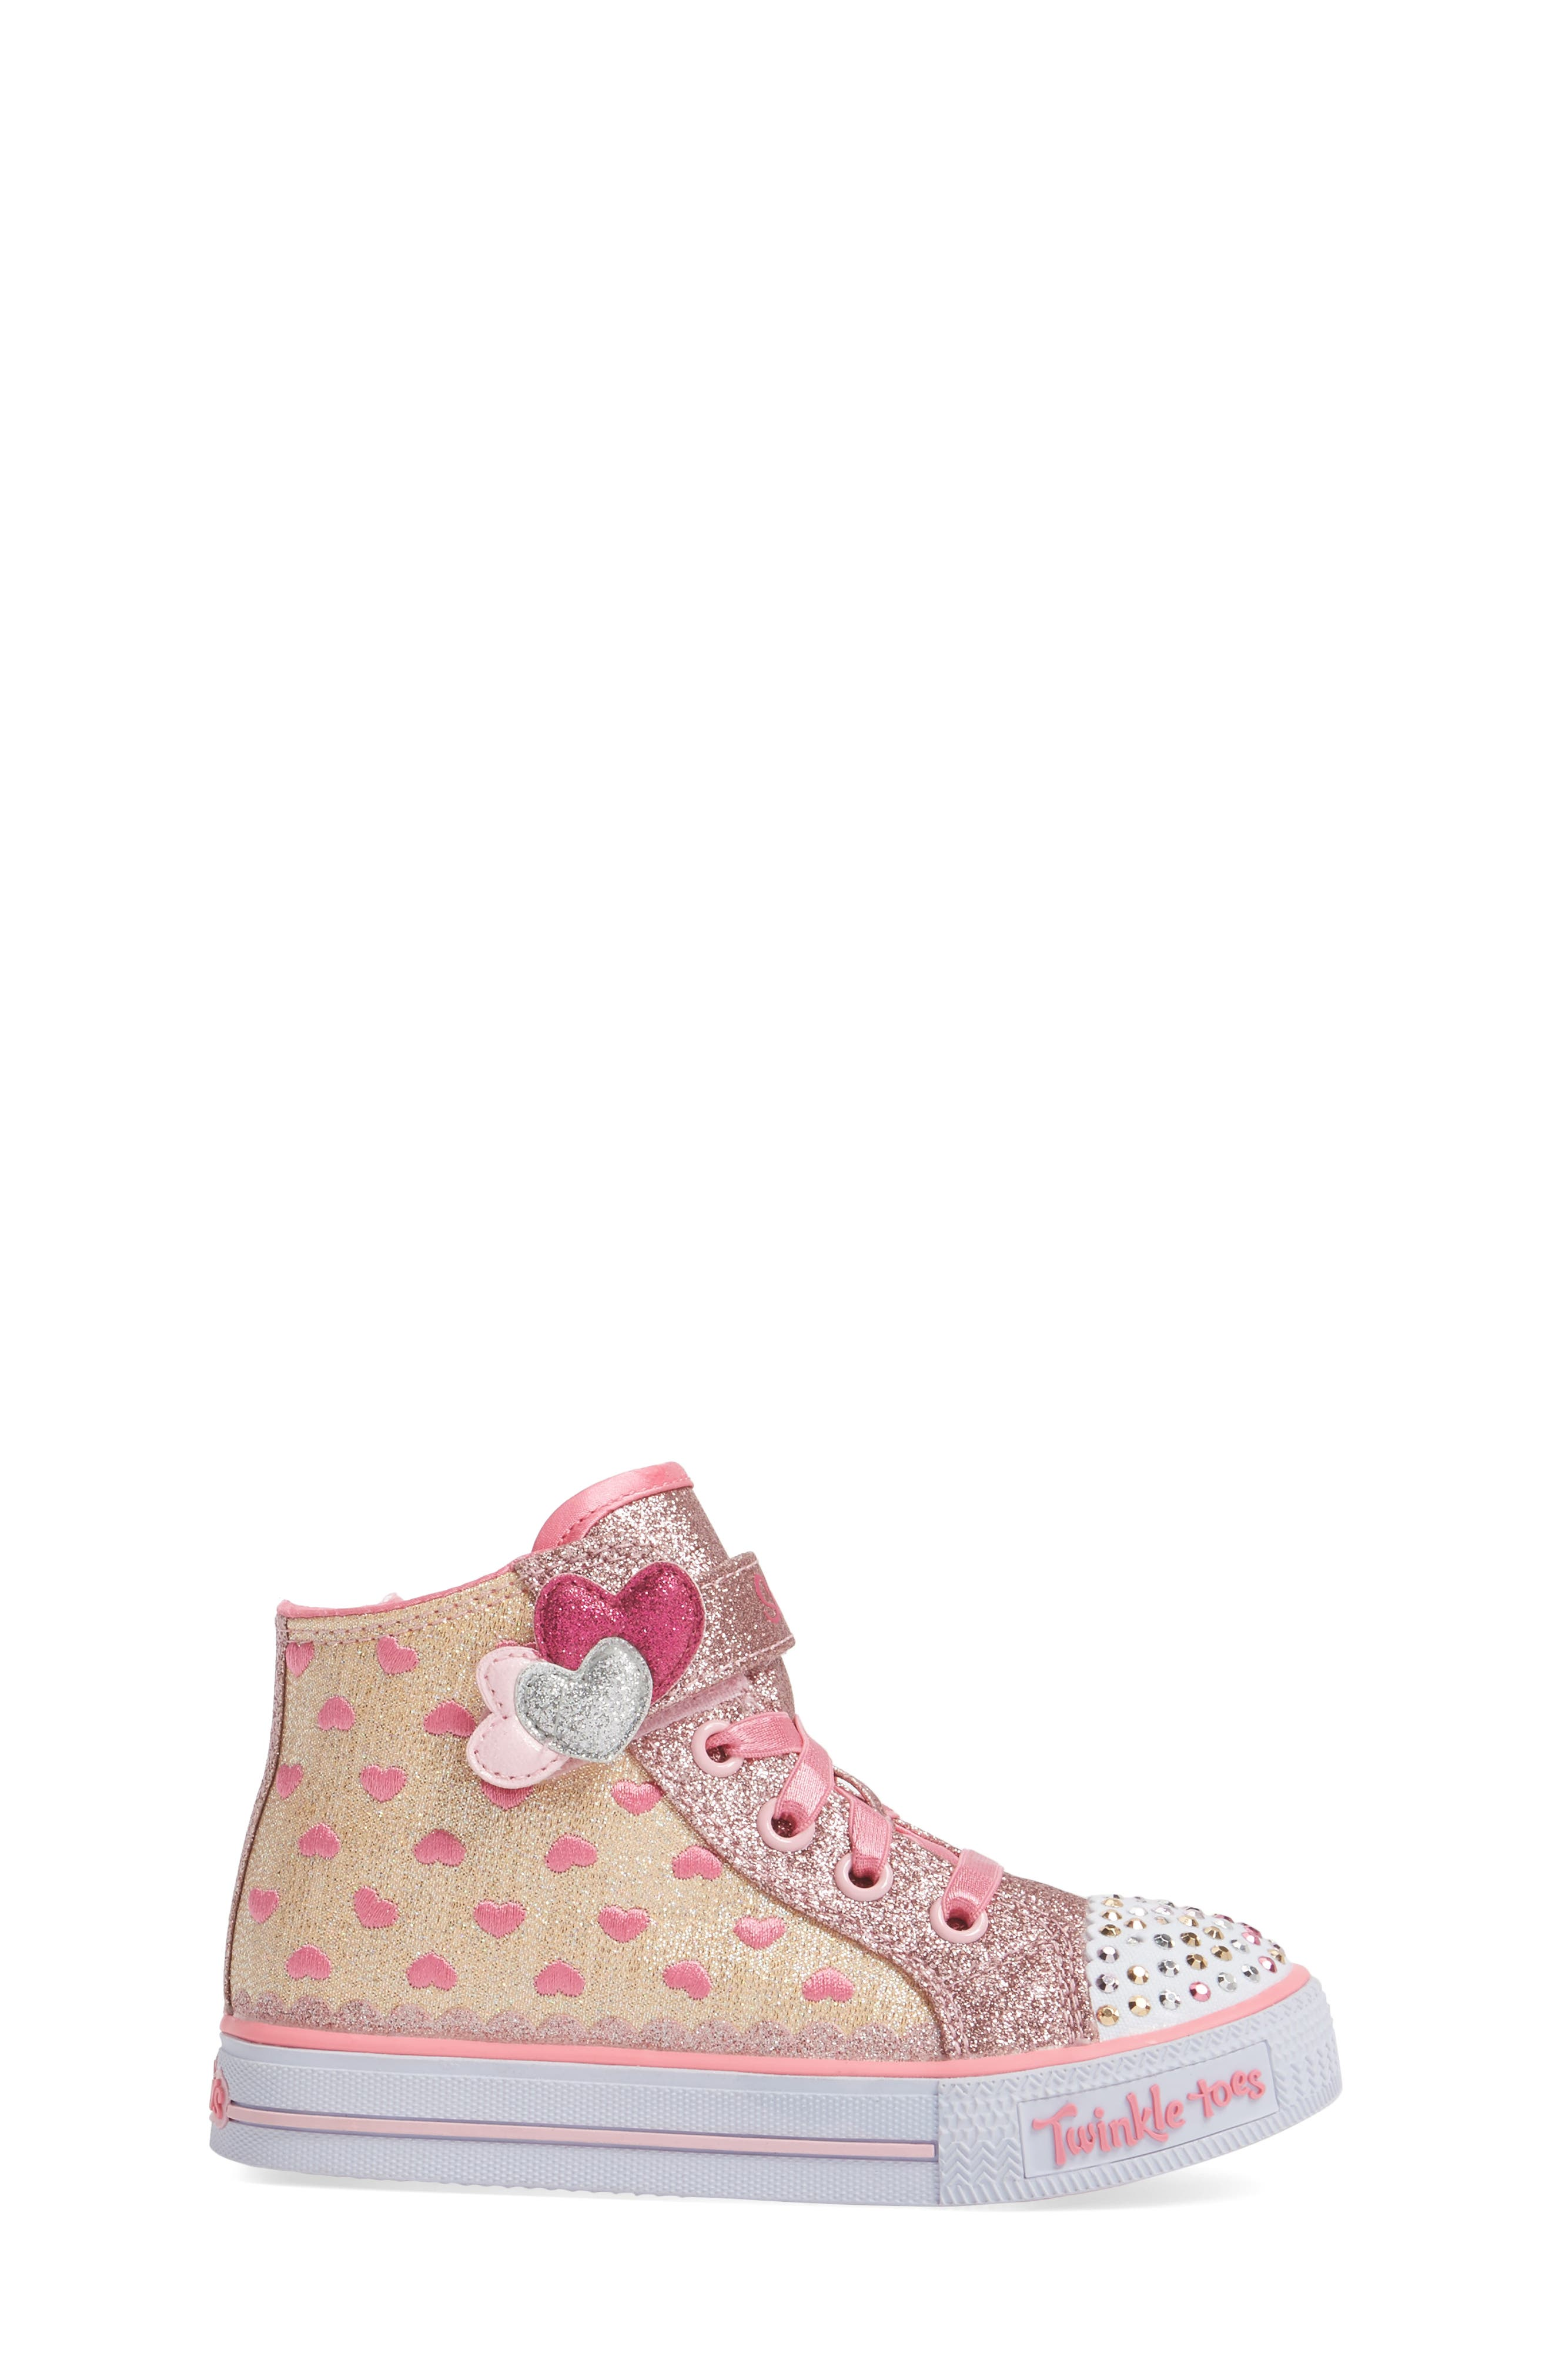 Twinkle Toes - Shuffles High Top Sneaker,                             Alternate thumbnail 3, color,                             225